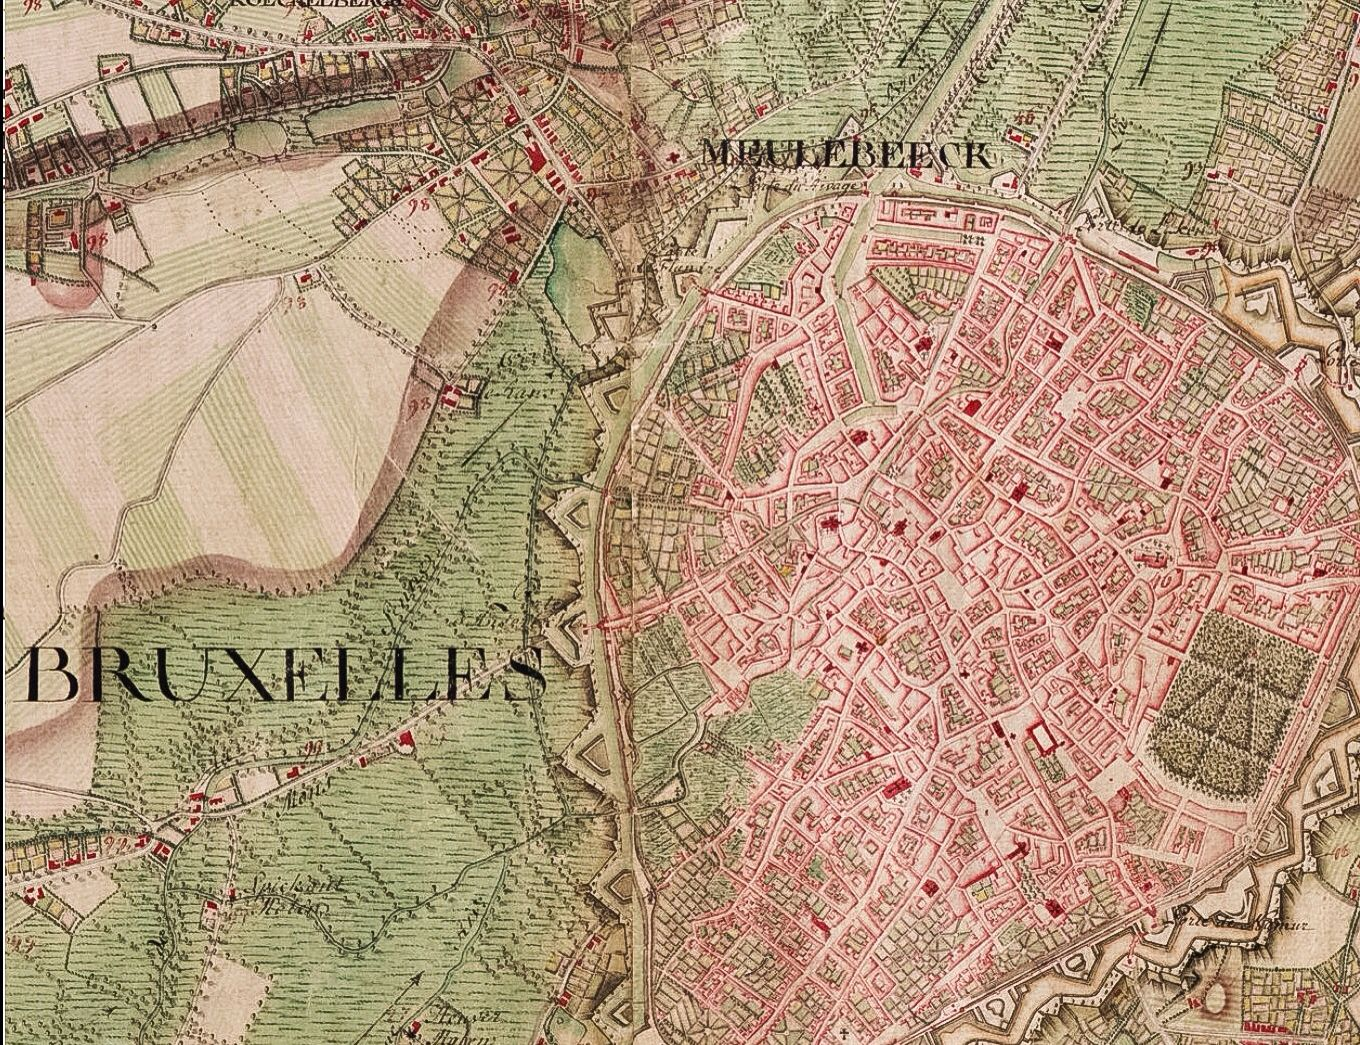 Brussel Bruxelles map Ferraris 1777 Travel Brussels Pinterest